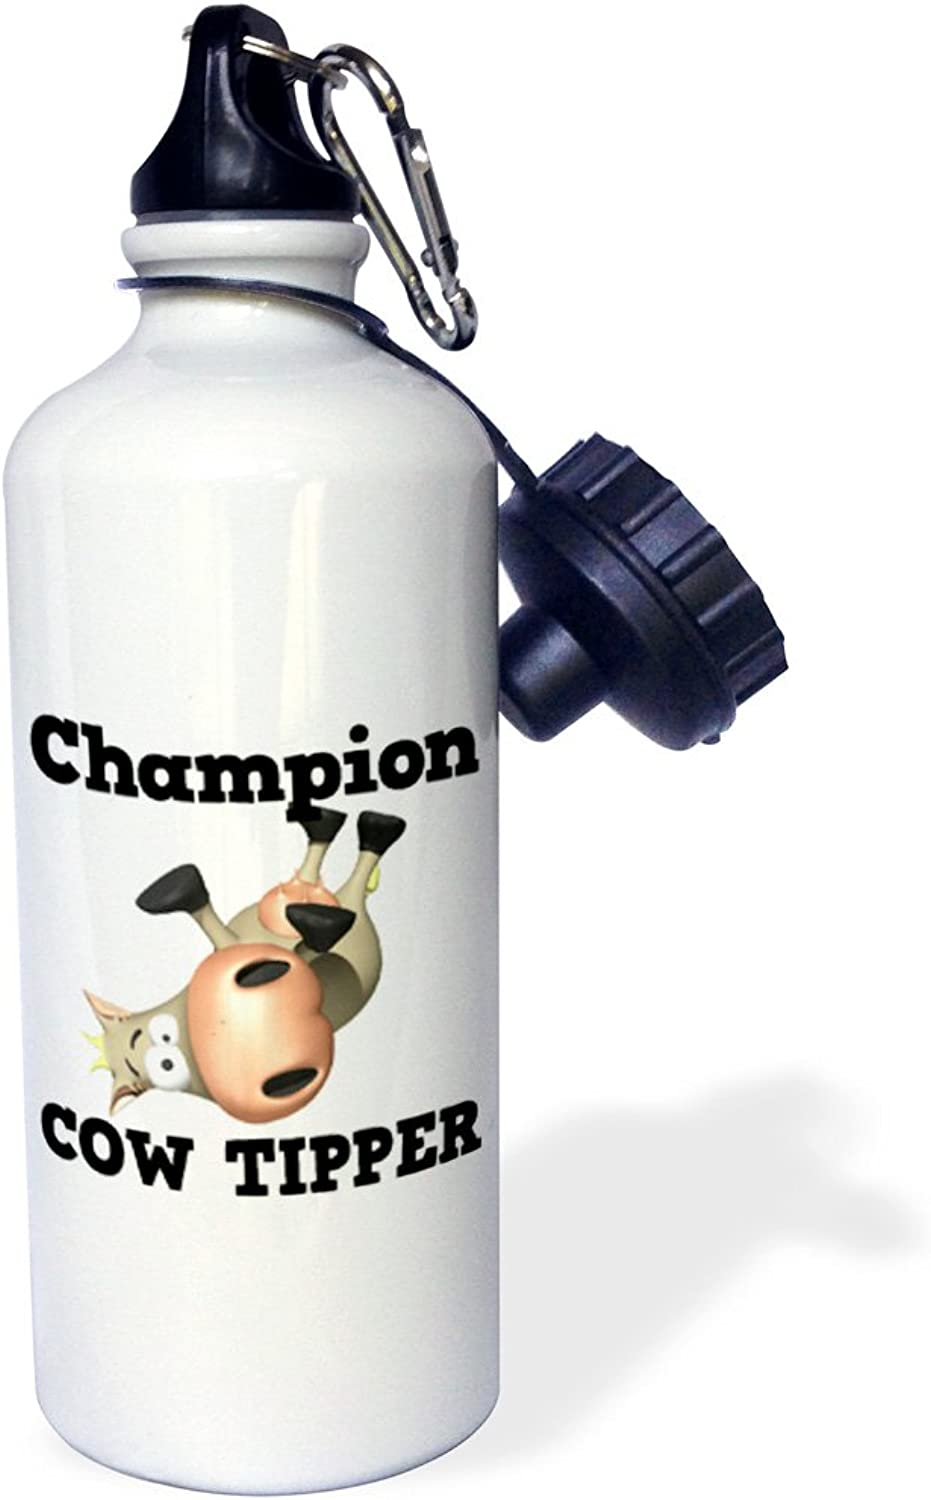 3dpink wb_102580_1 Funny Champion Cow Tipper Cowin Tipping Humor  Sports Water Bottle, 21 oz, White